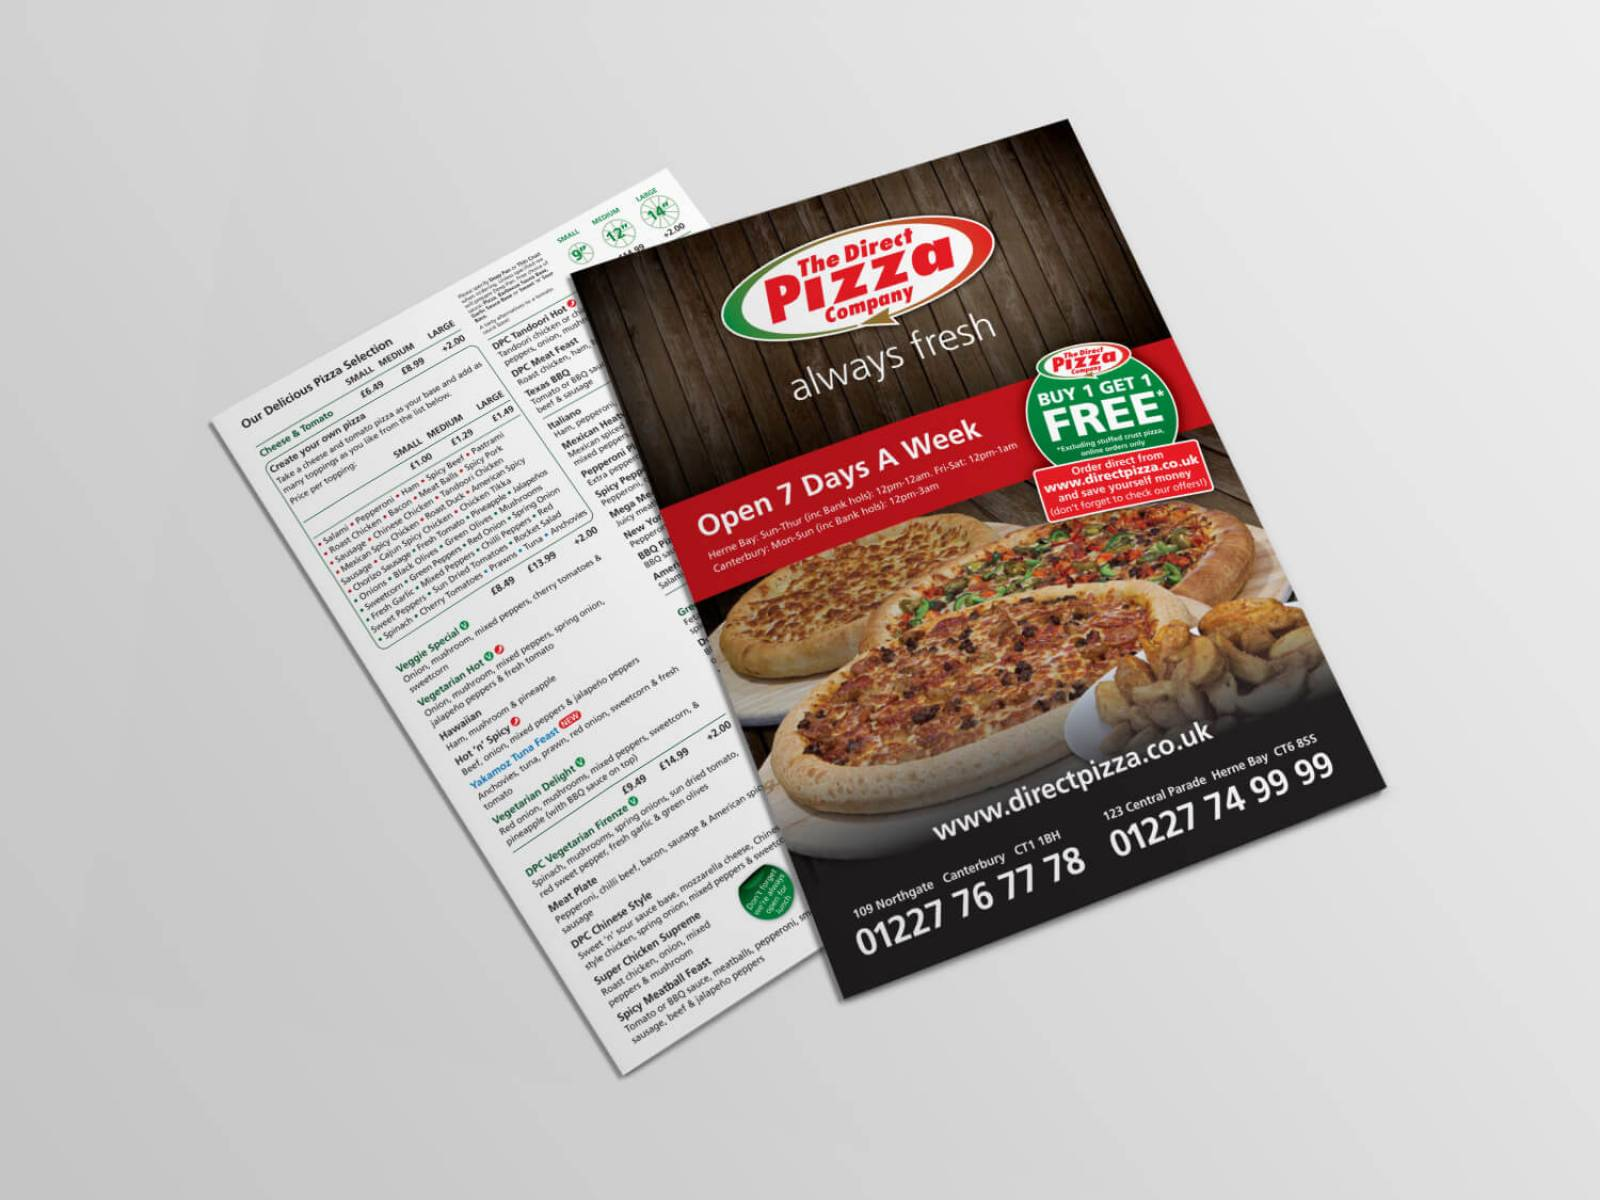 Direct-pizza-flyer-design-agency-graphic-design-canterbury.jpg